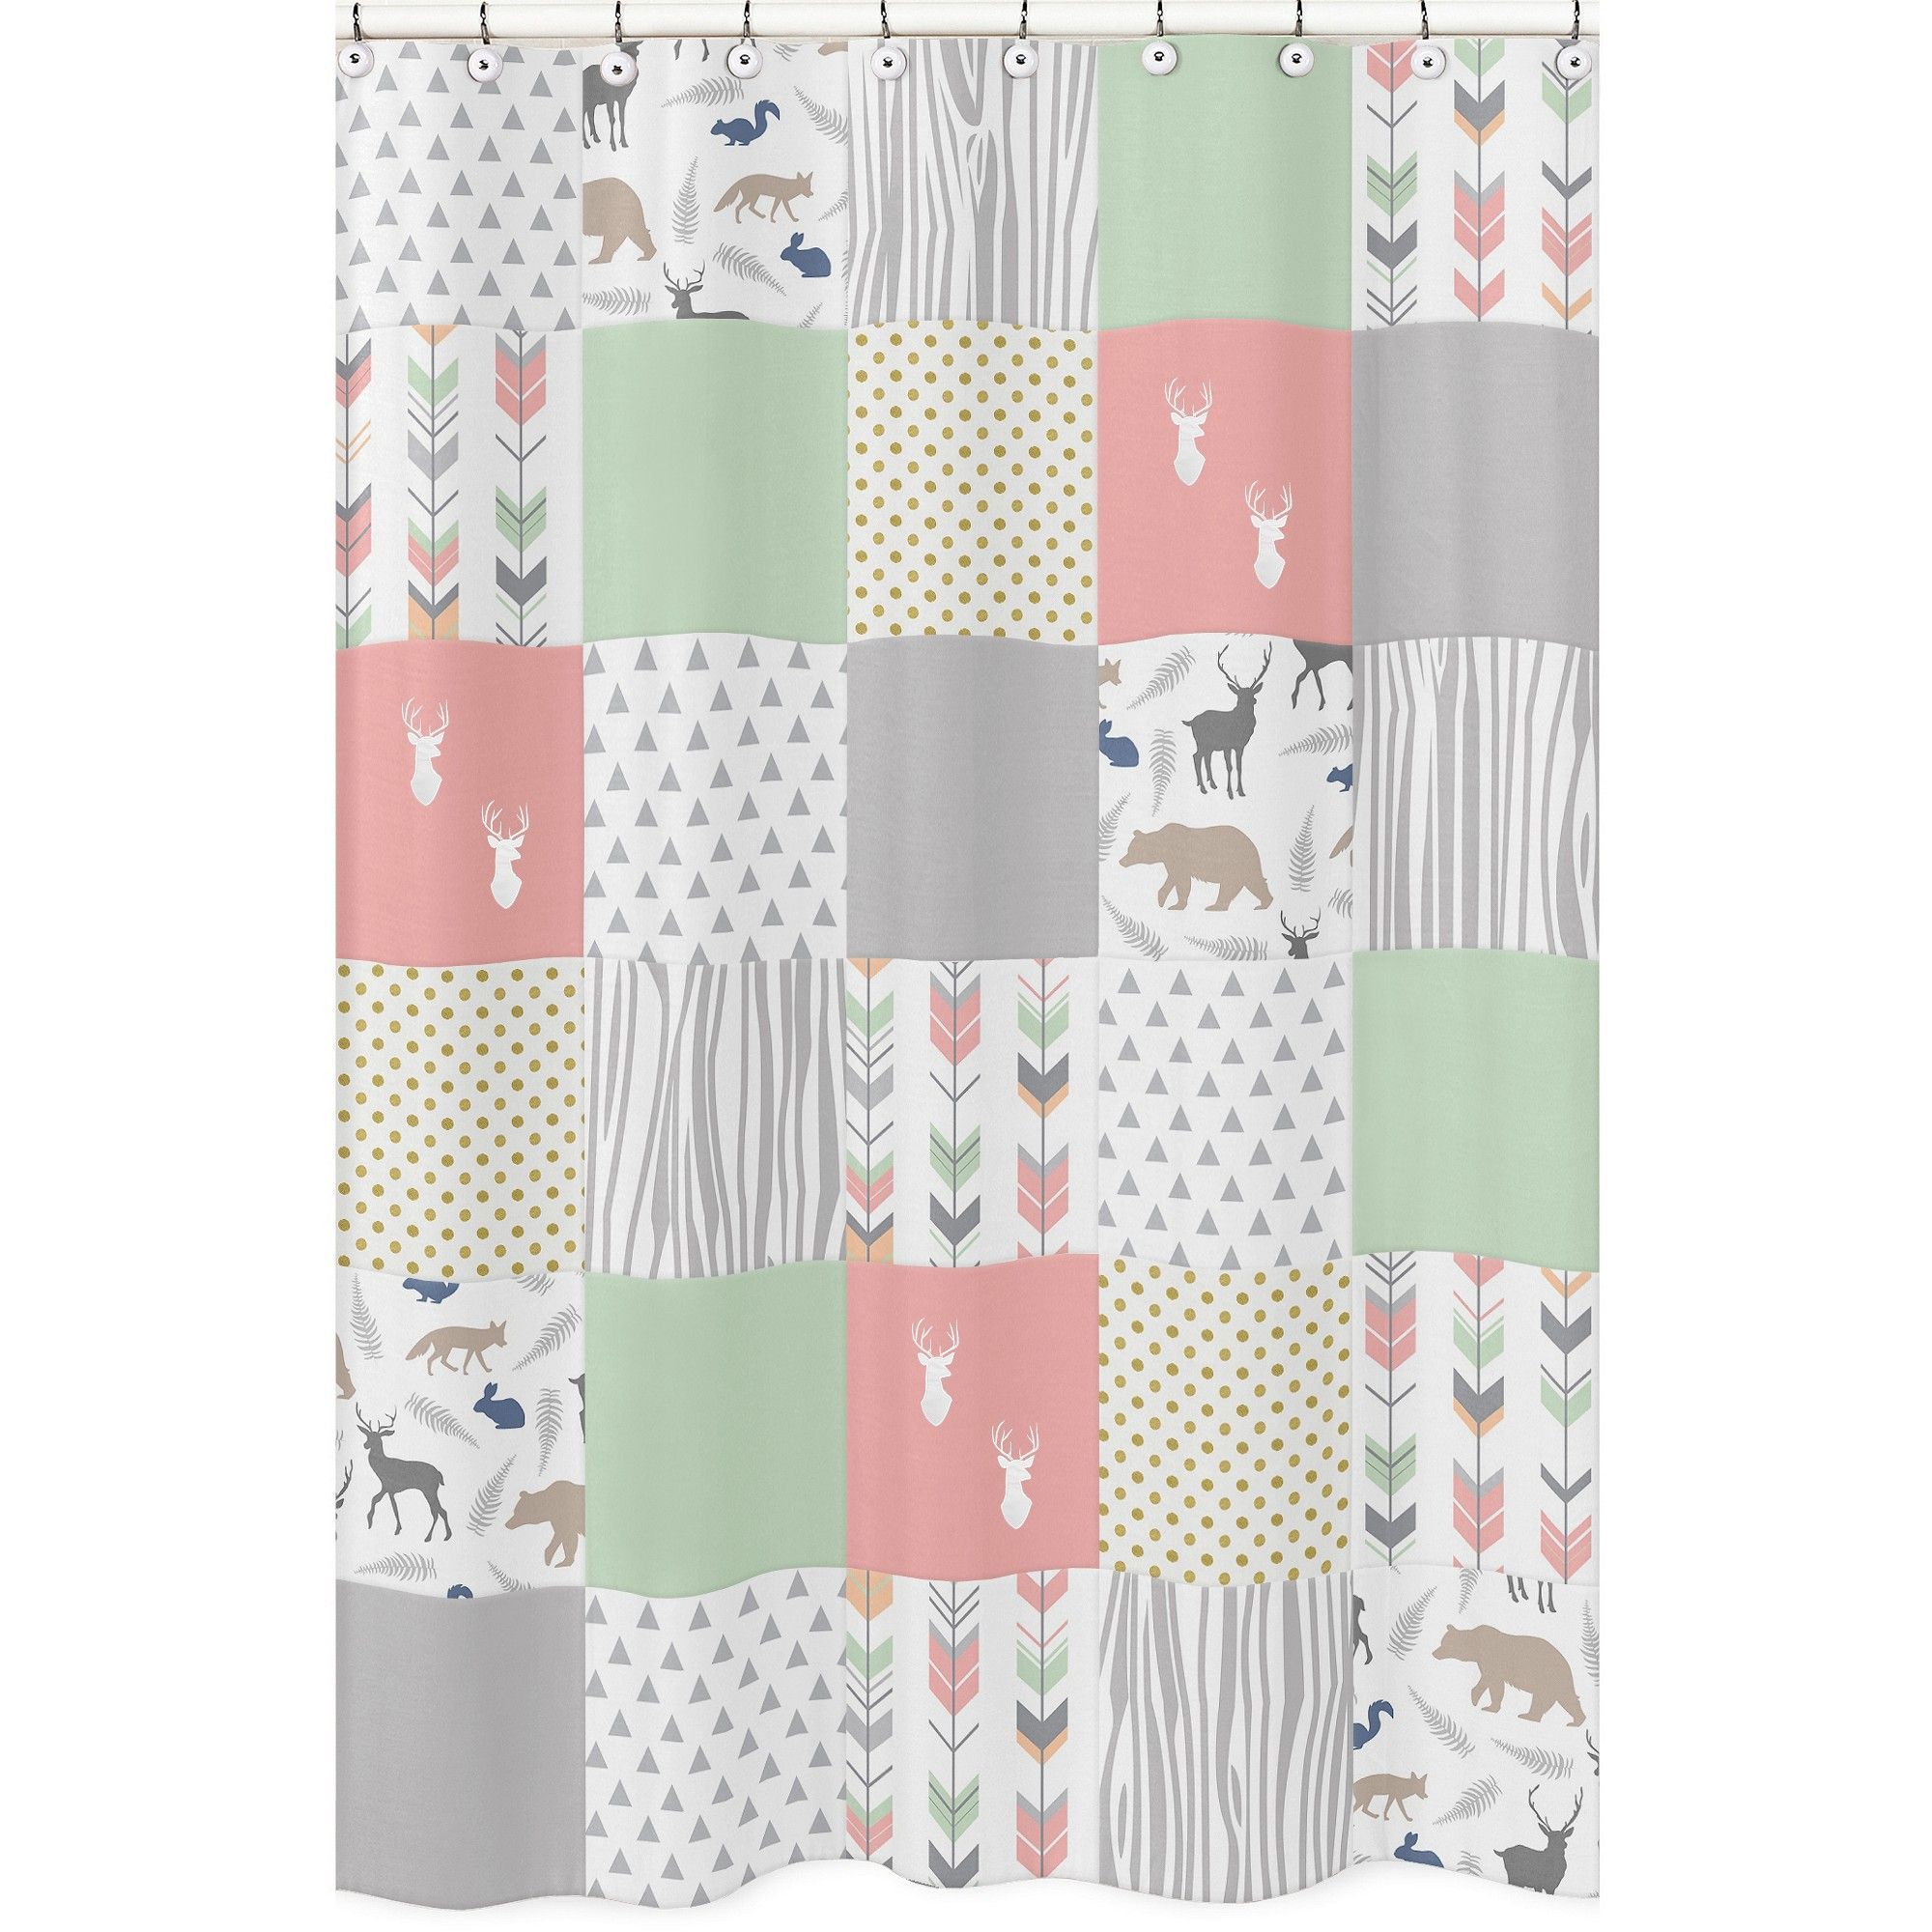 Woodsy Shower Curtain Sweet Jojo Designs Colorful Curtains